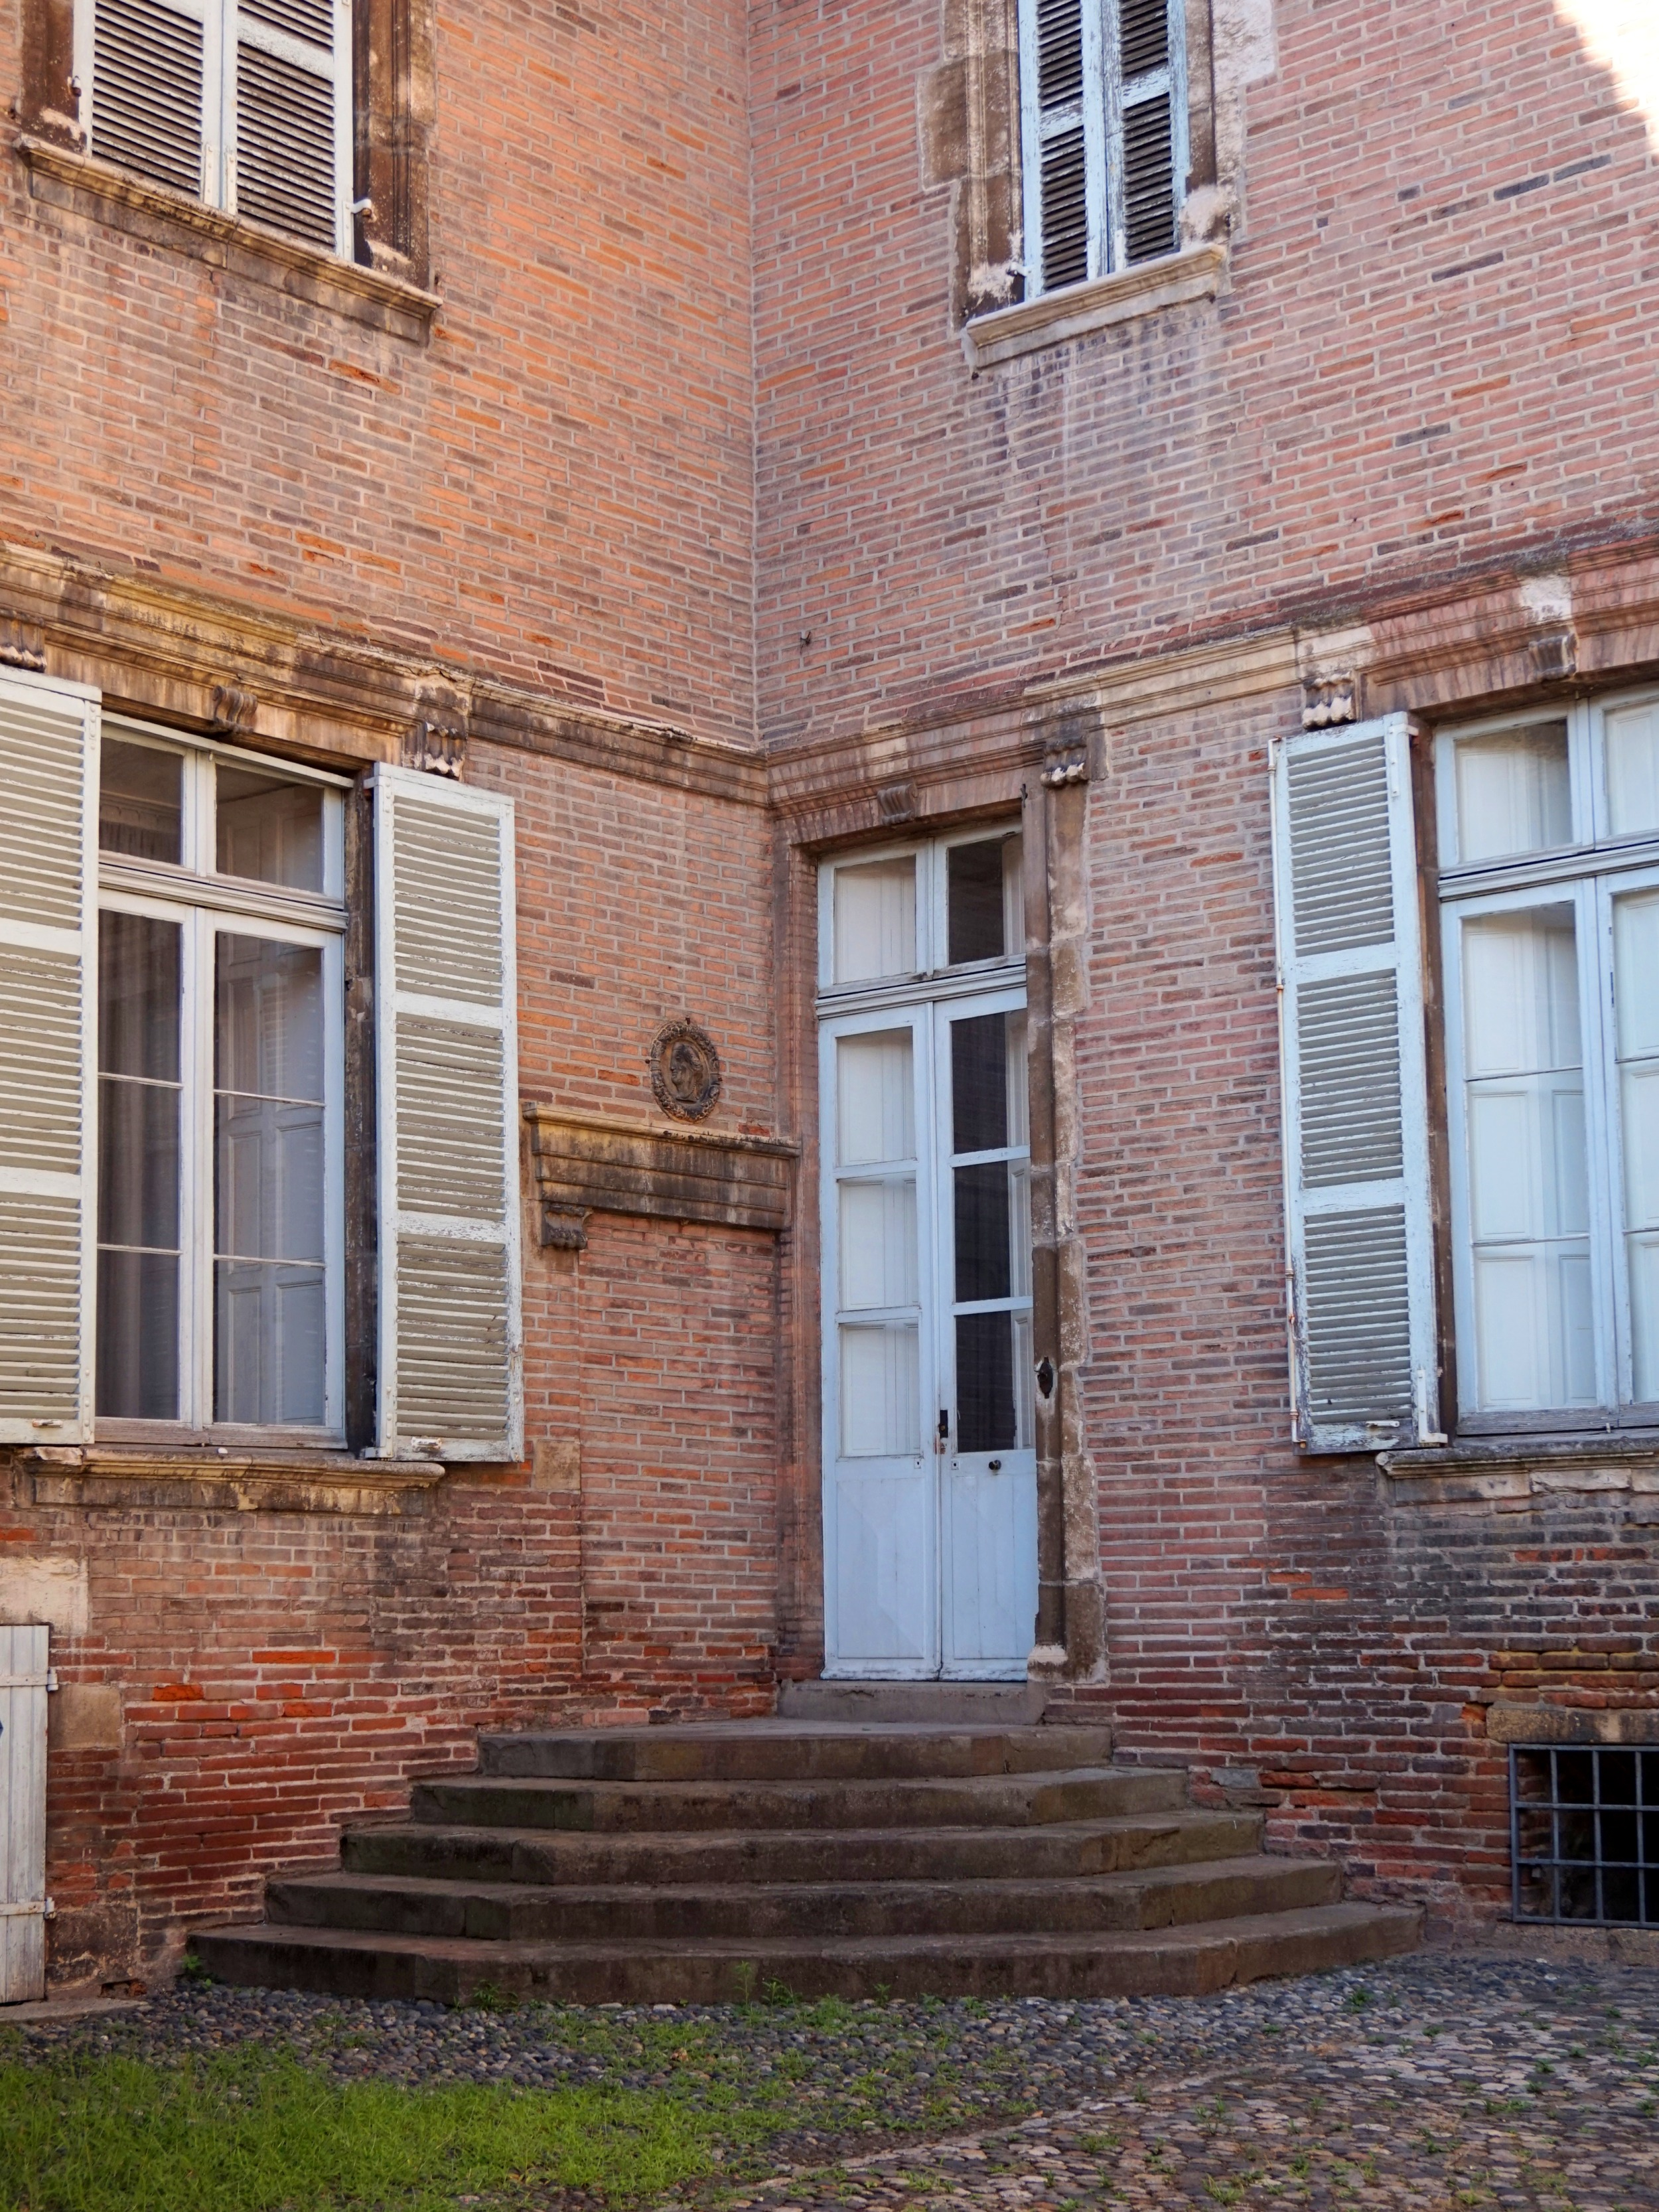 Balade-Toulouse-St-Etienne-20